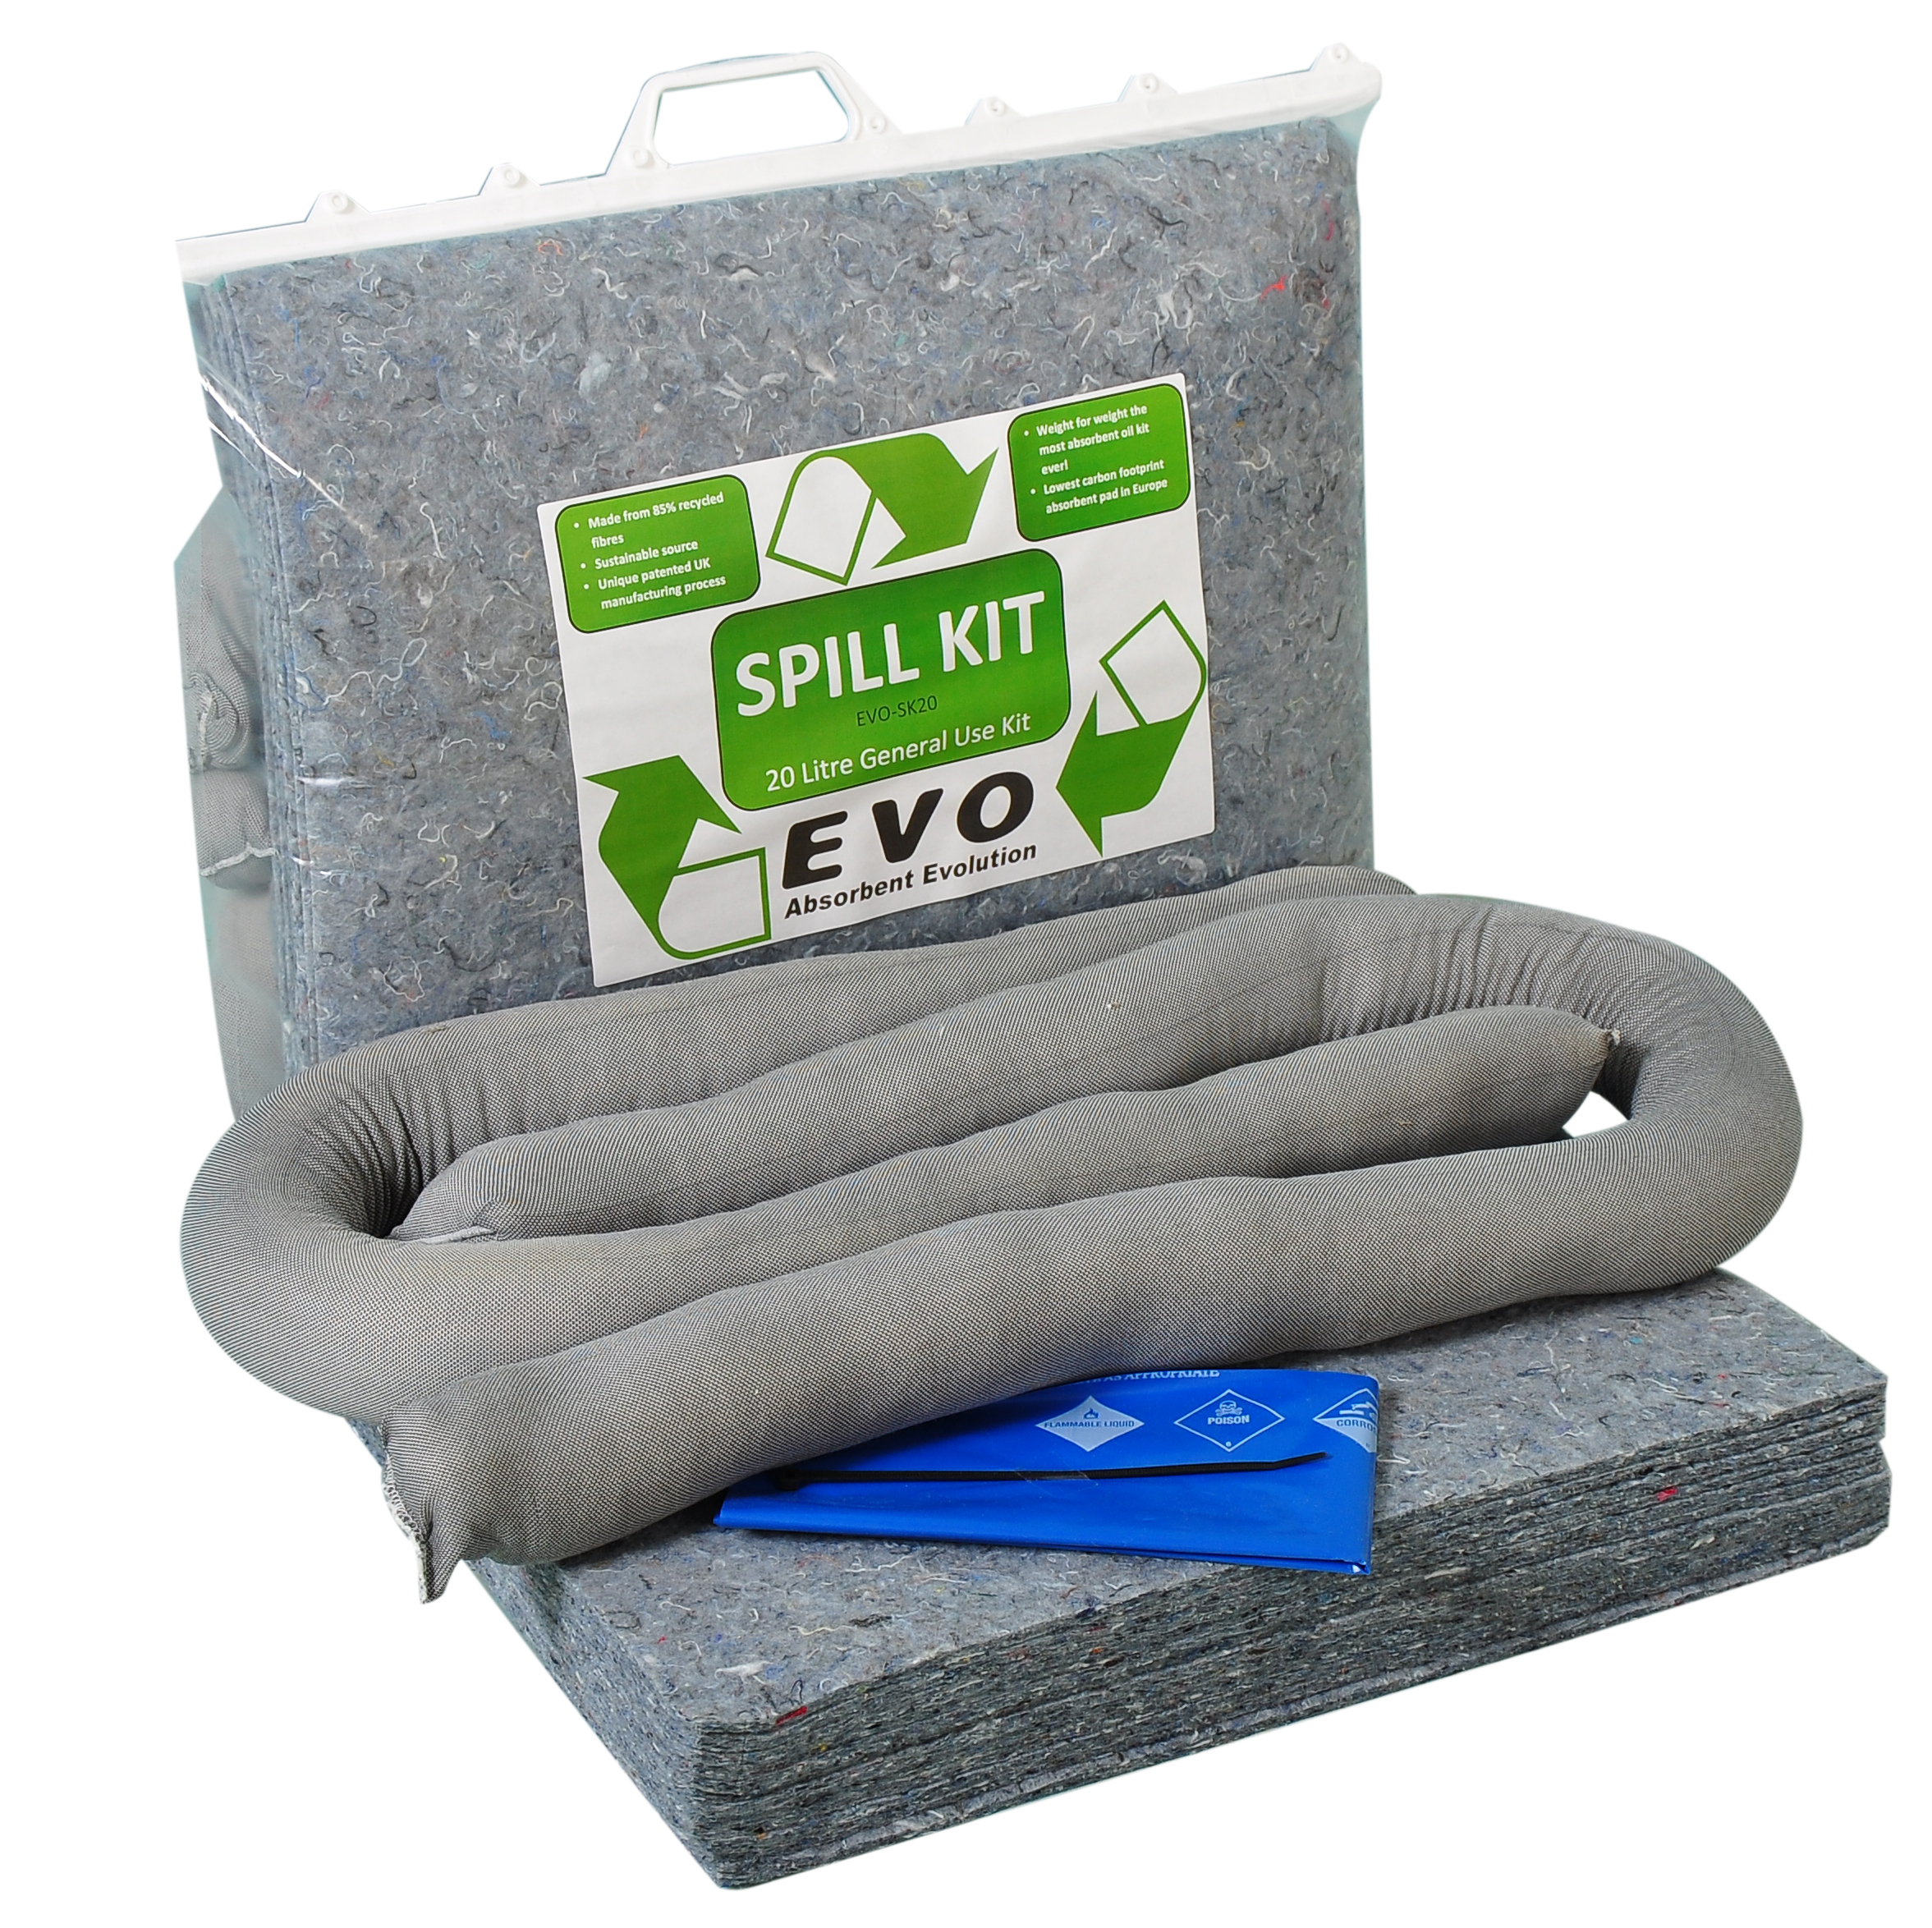 Universal Spill Kit In Clip Top Bag 20l Once Only Kit